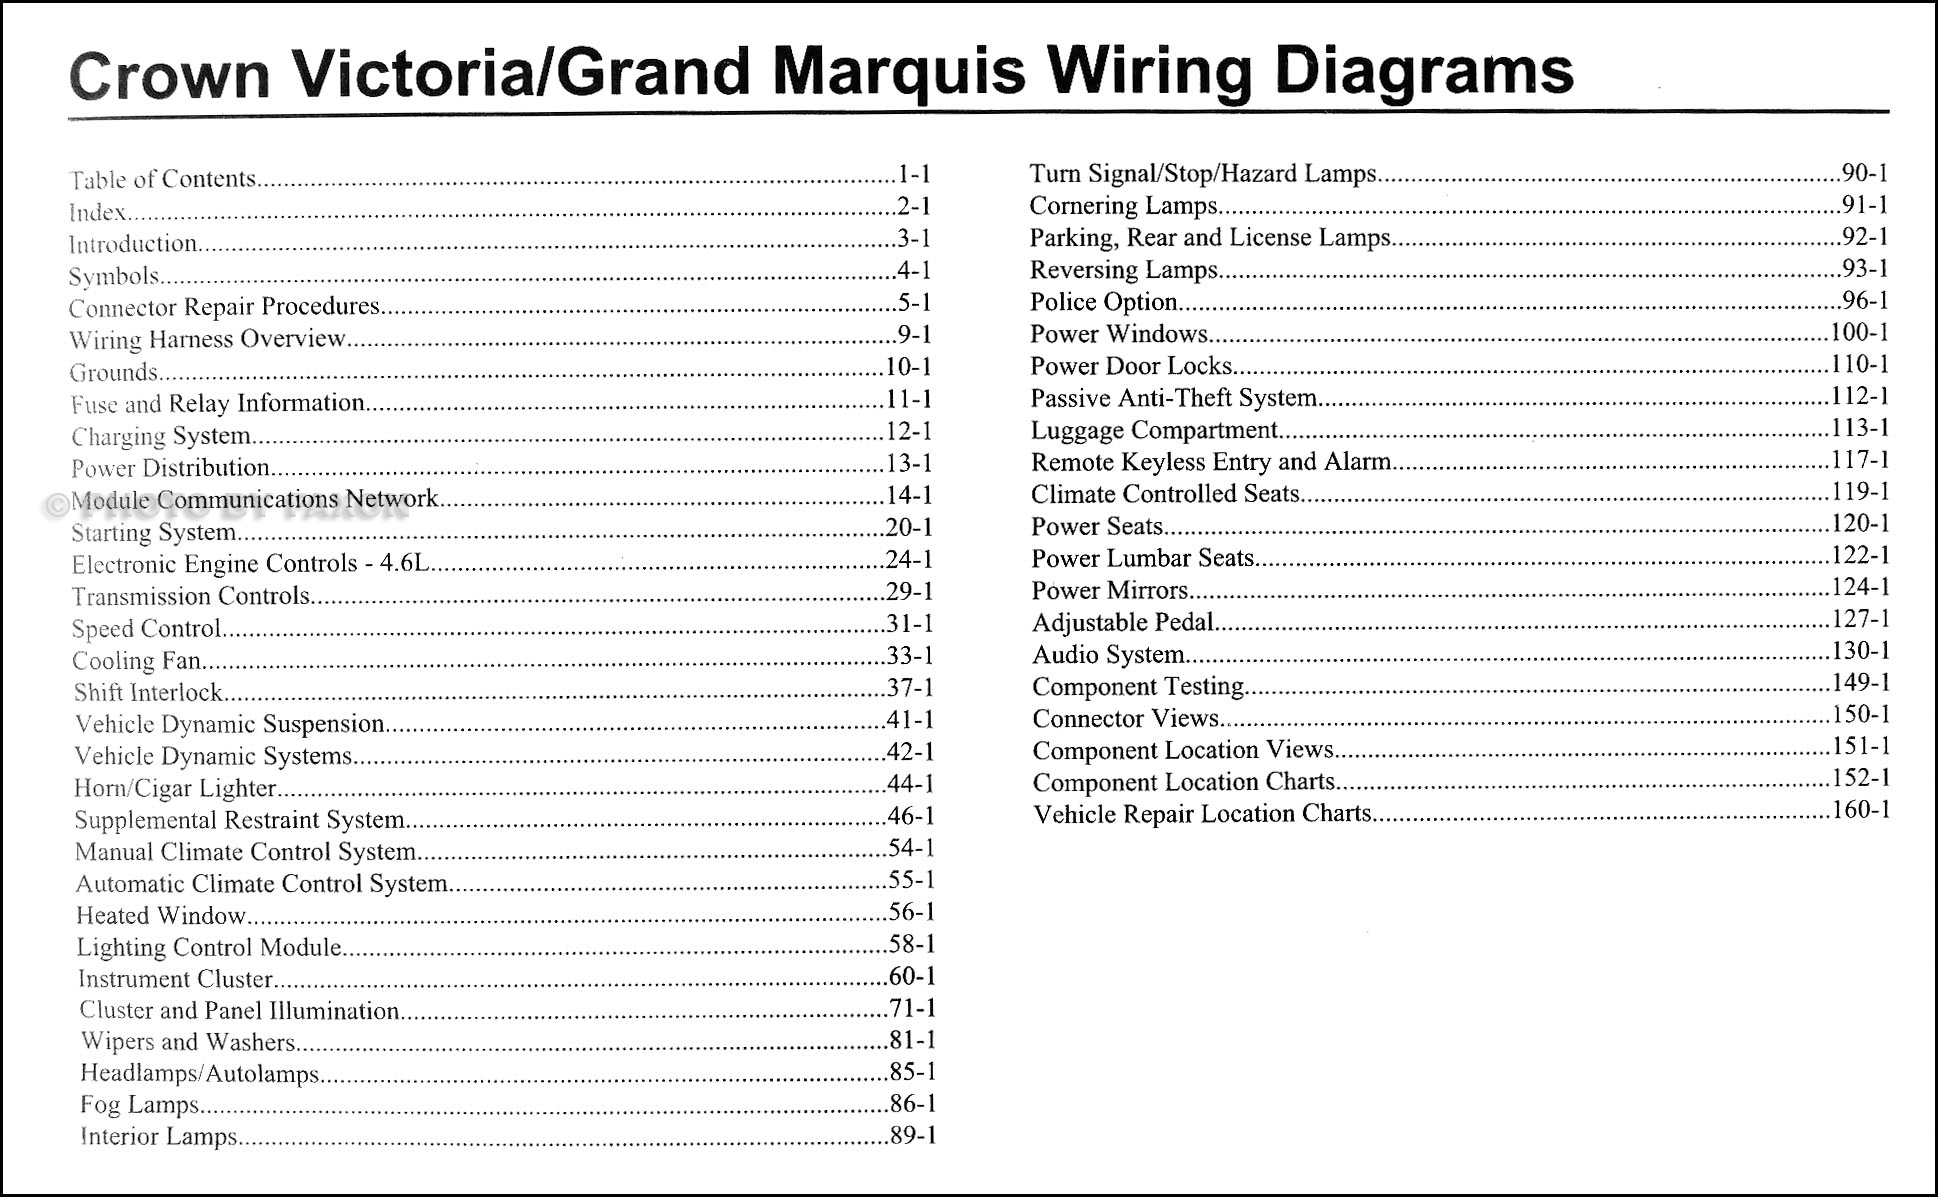 2009 crown victoria & grand marquis original wiring diagram manual 1989 ford crown victoria wiring diagram at 1989 Crown Victoria Wiring Diagram